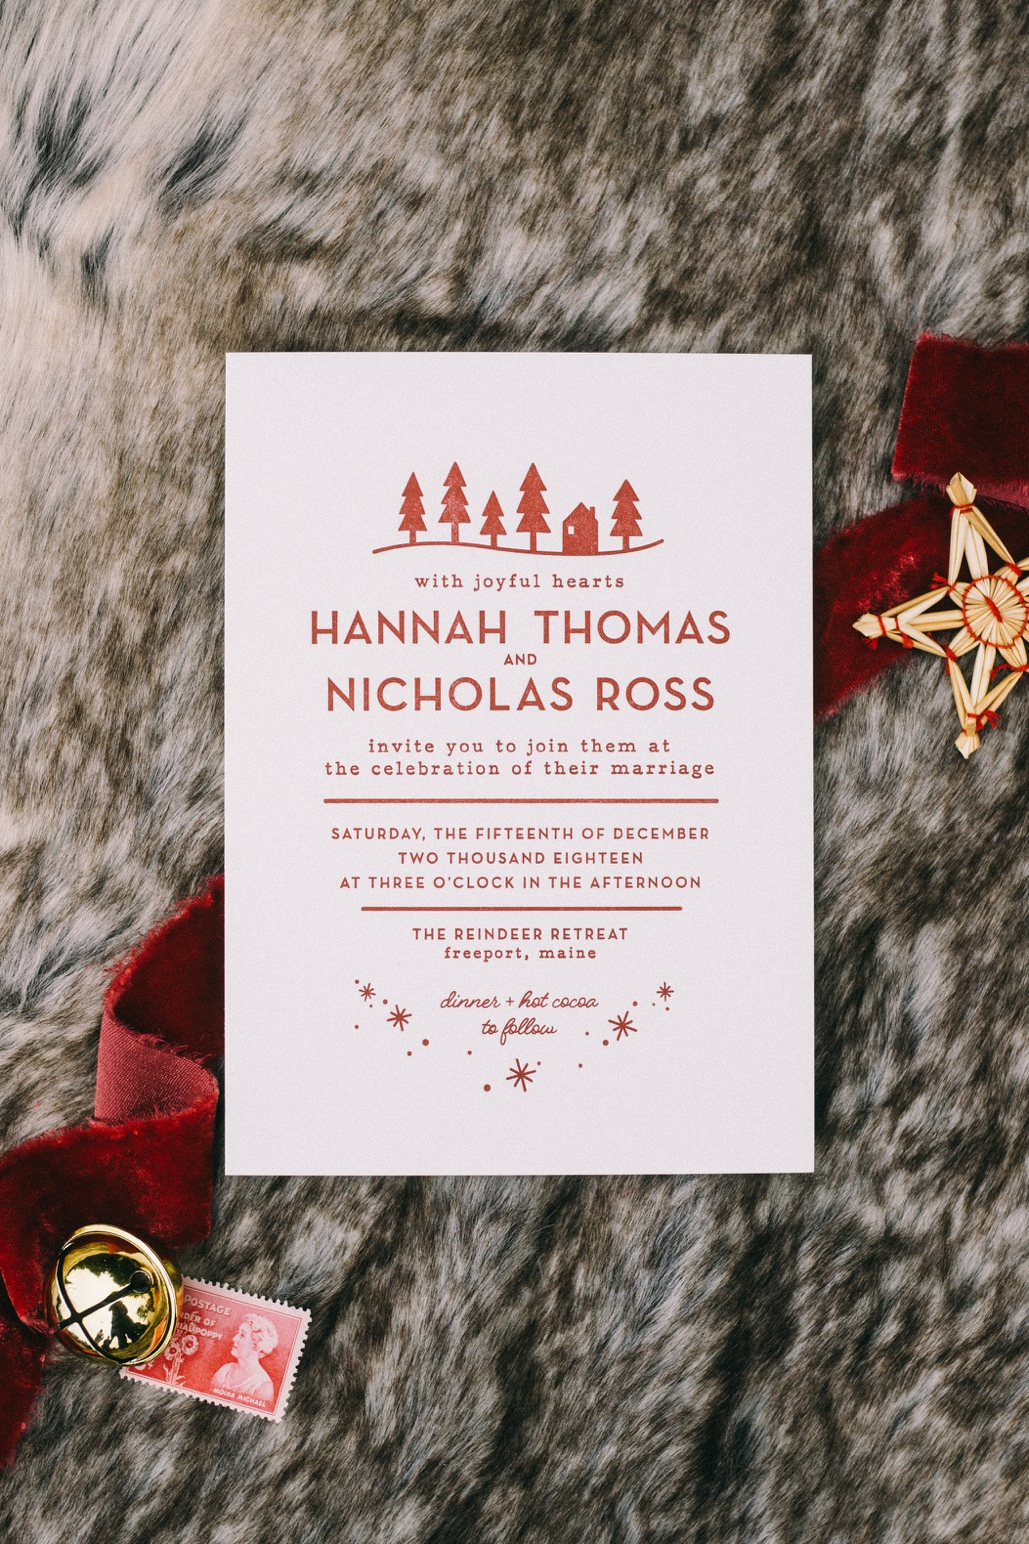 Winter Christmas wedding invitation with Scandinavian inspiration and details, minimal letterpress design